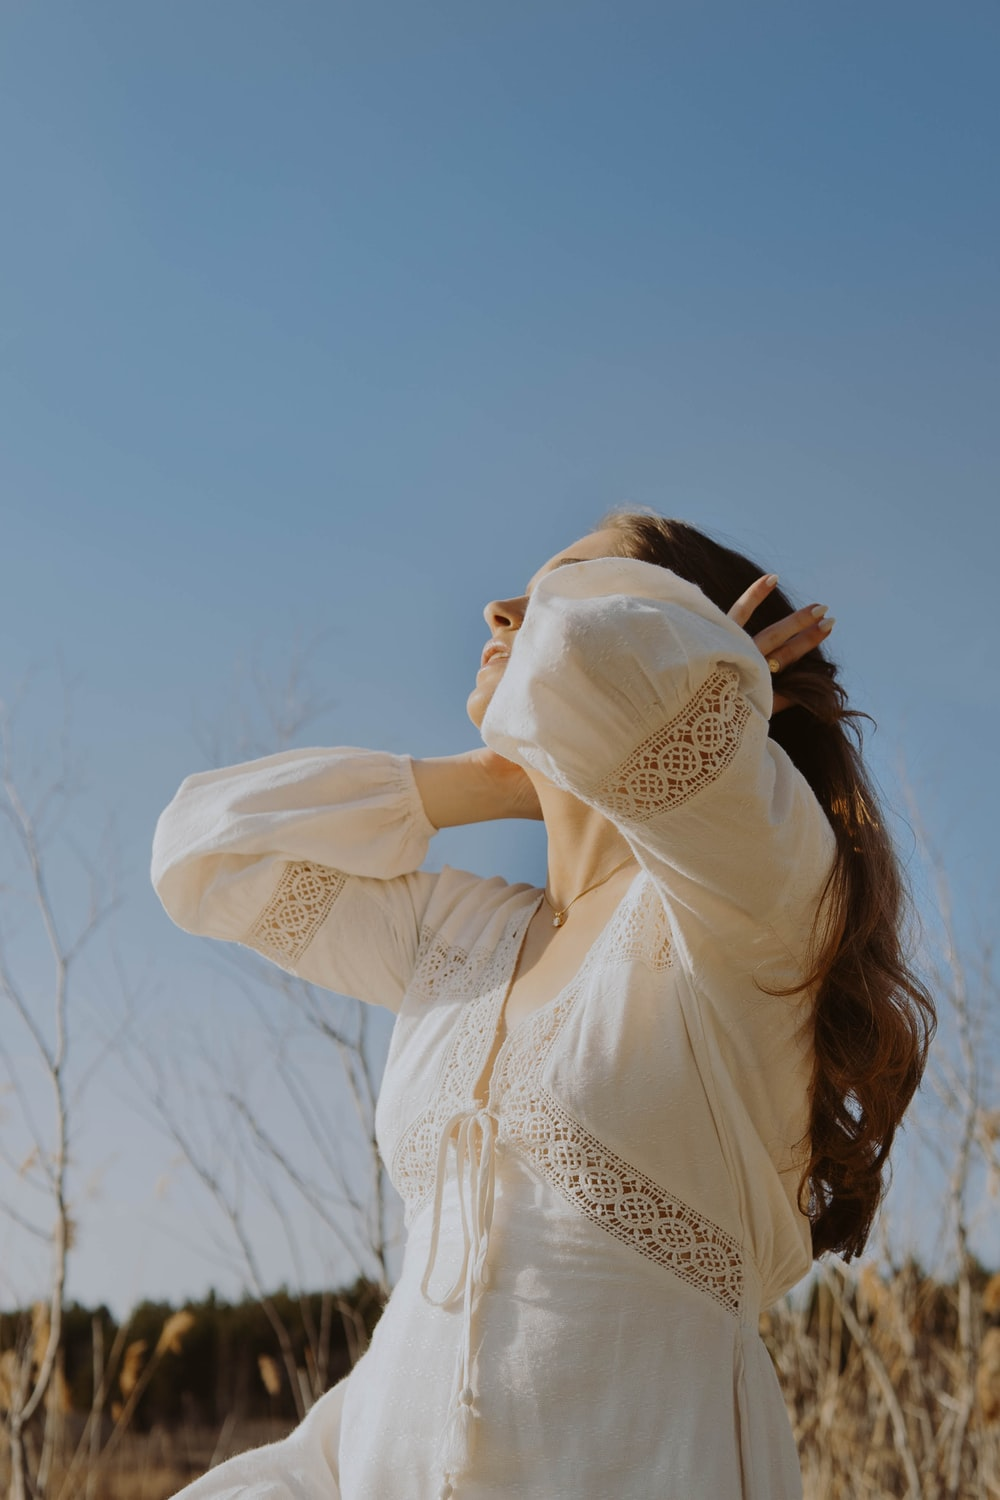 woman in white long sleeve shirt covering her face with white scarf